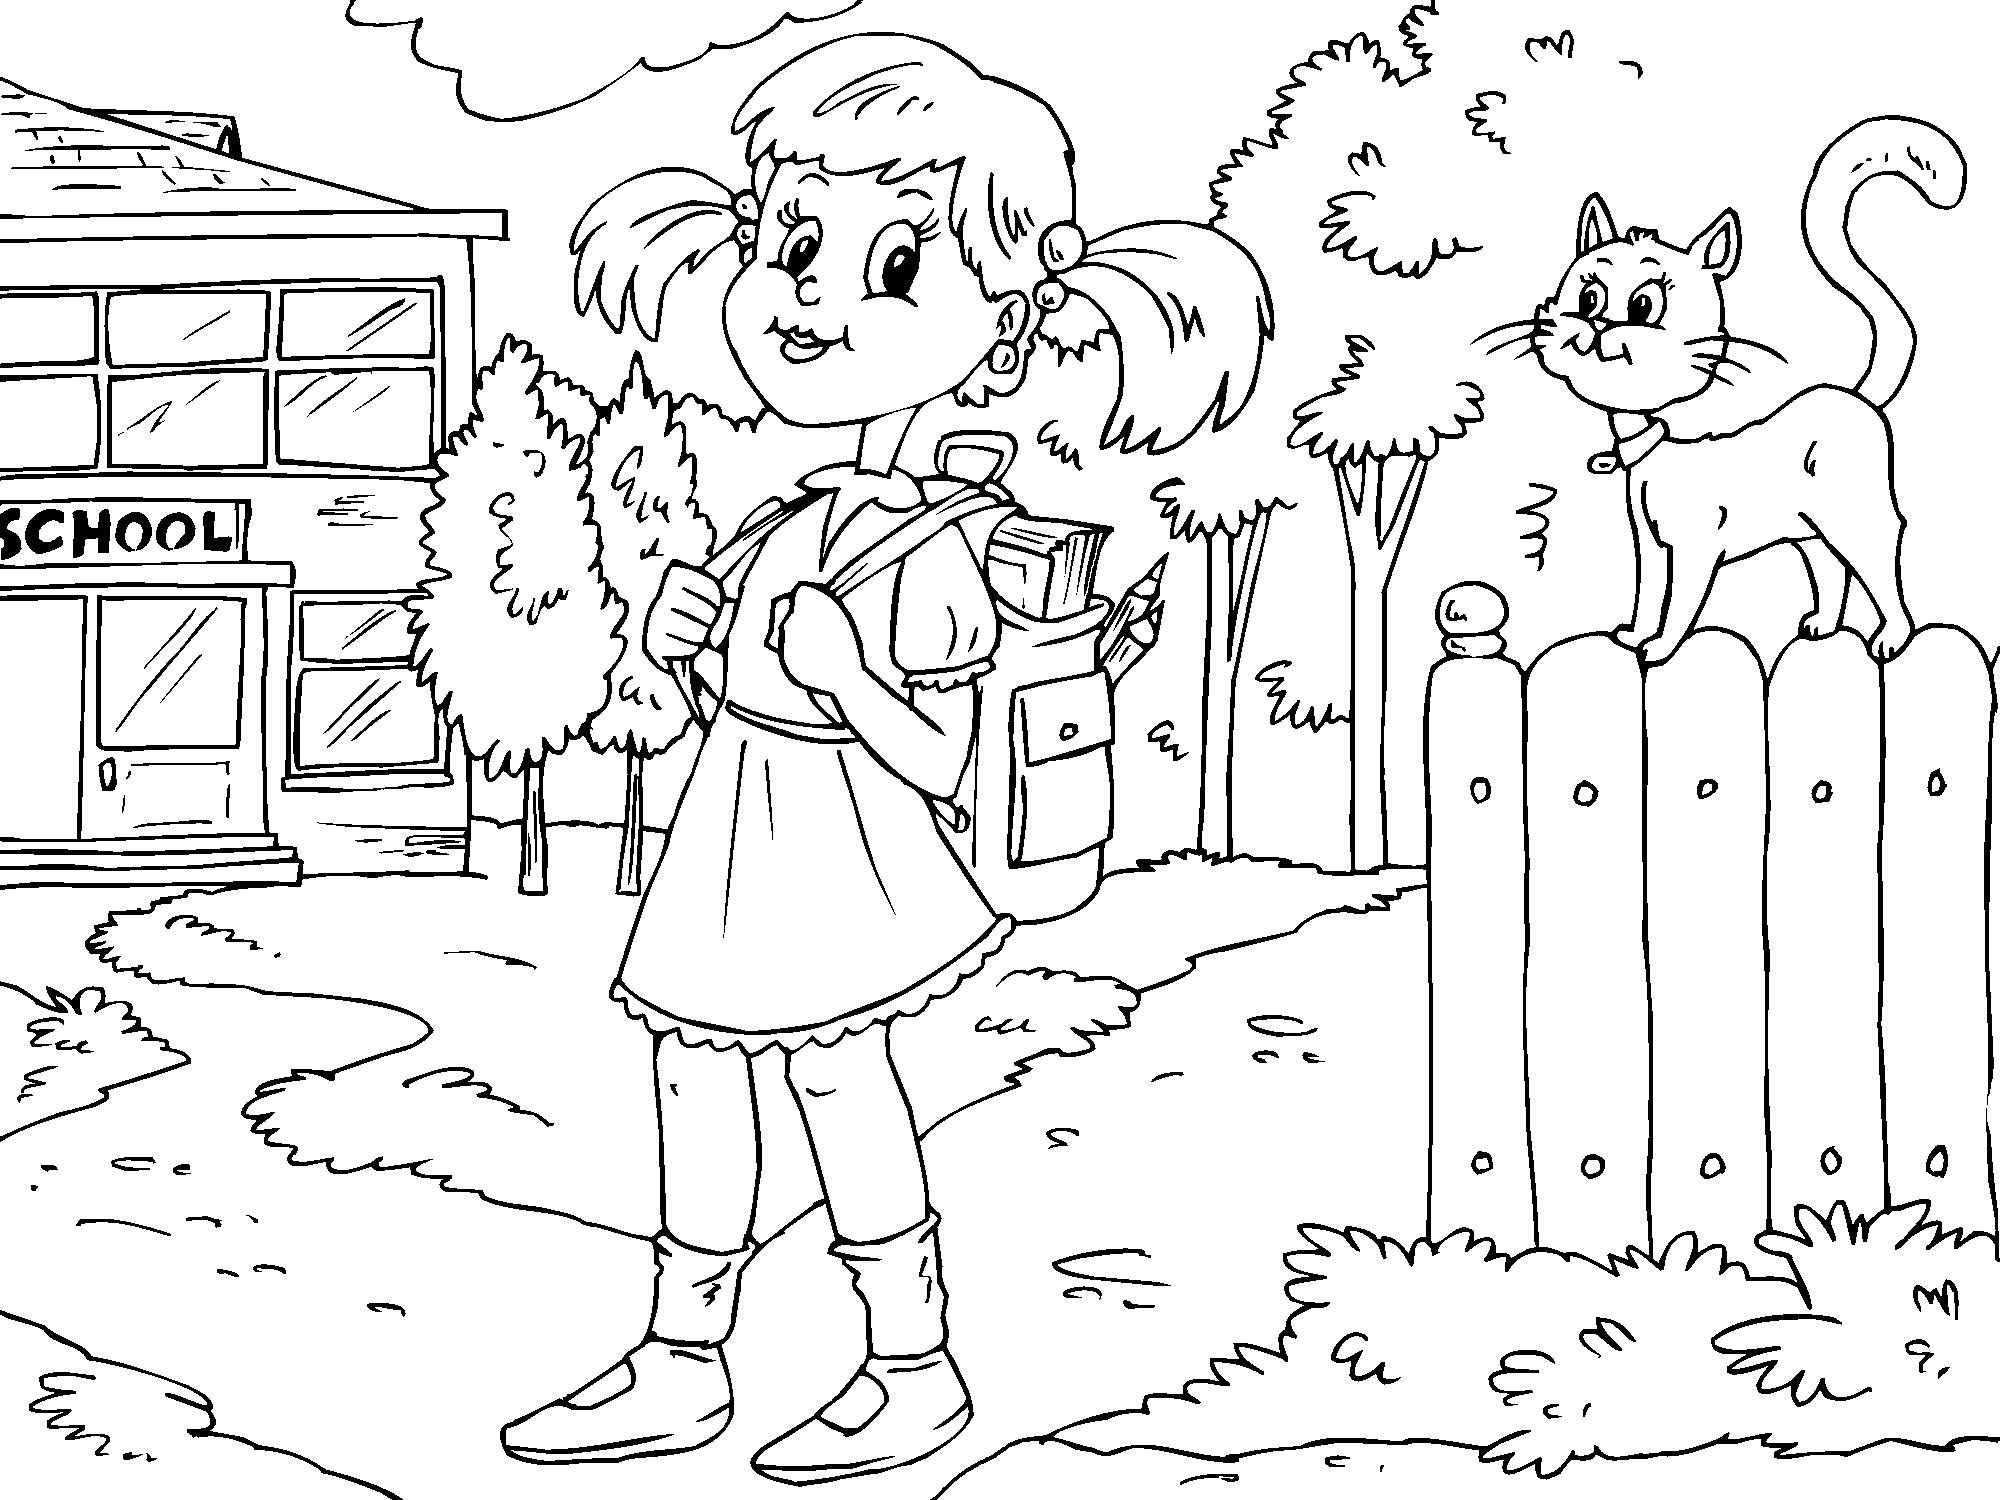 School coloring page - Download Large Image